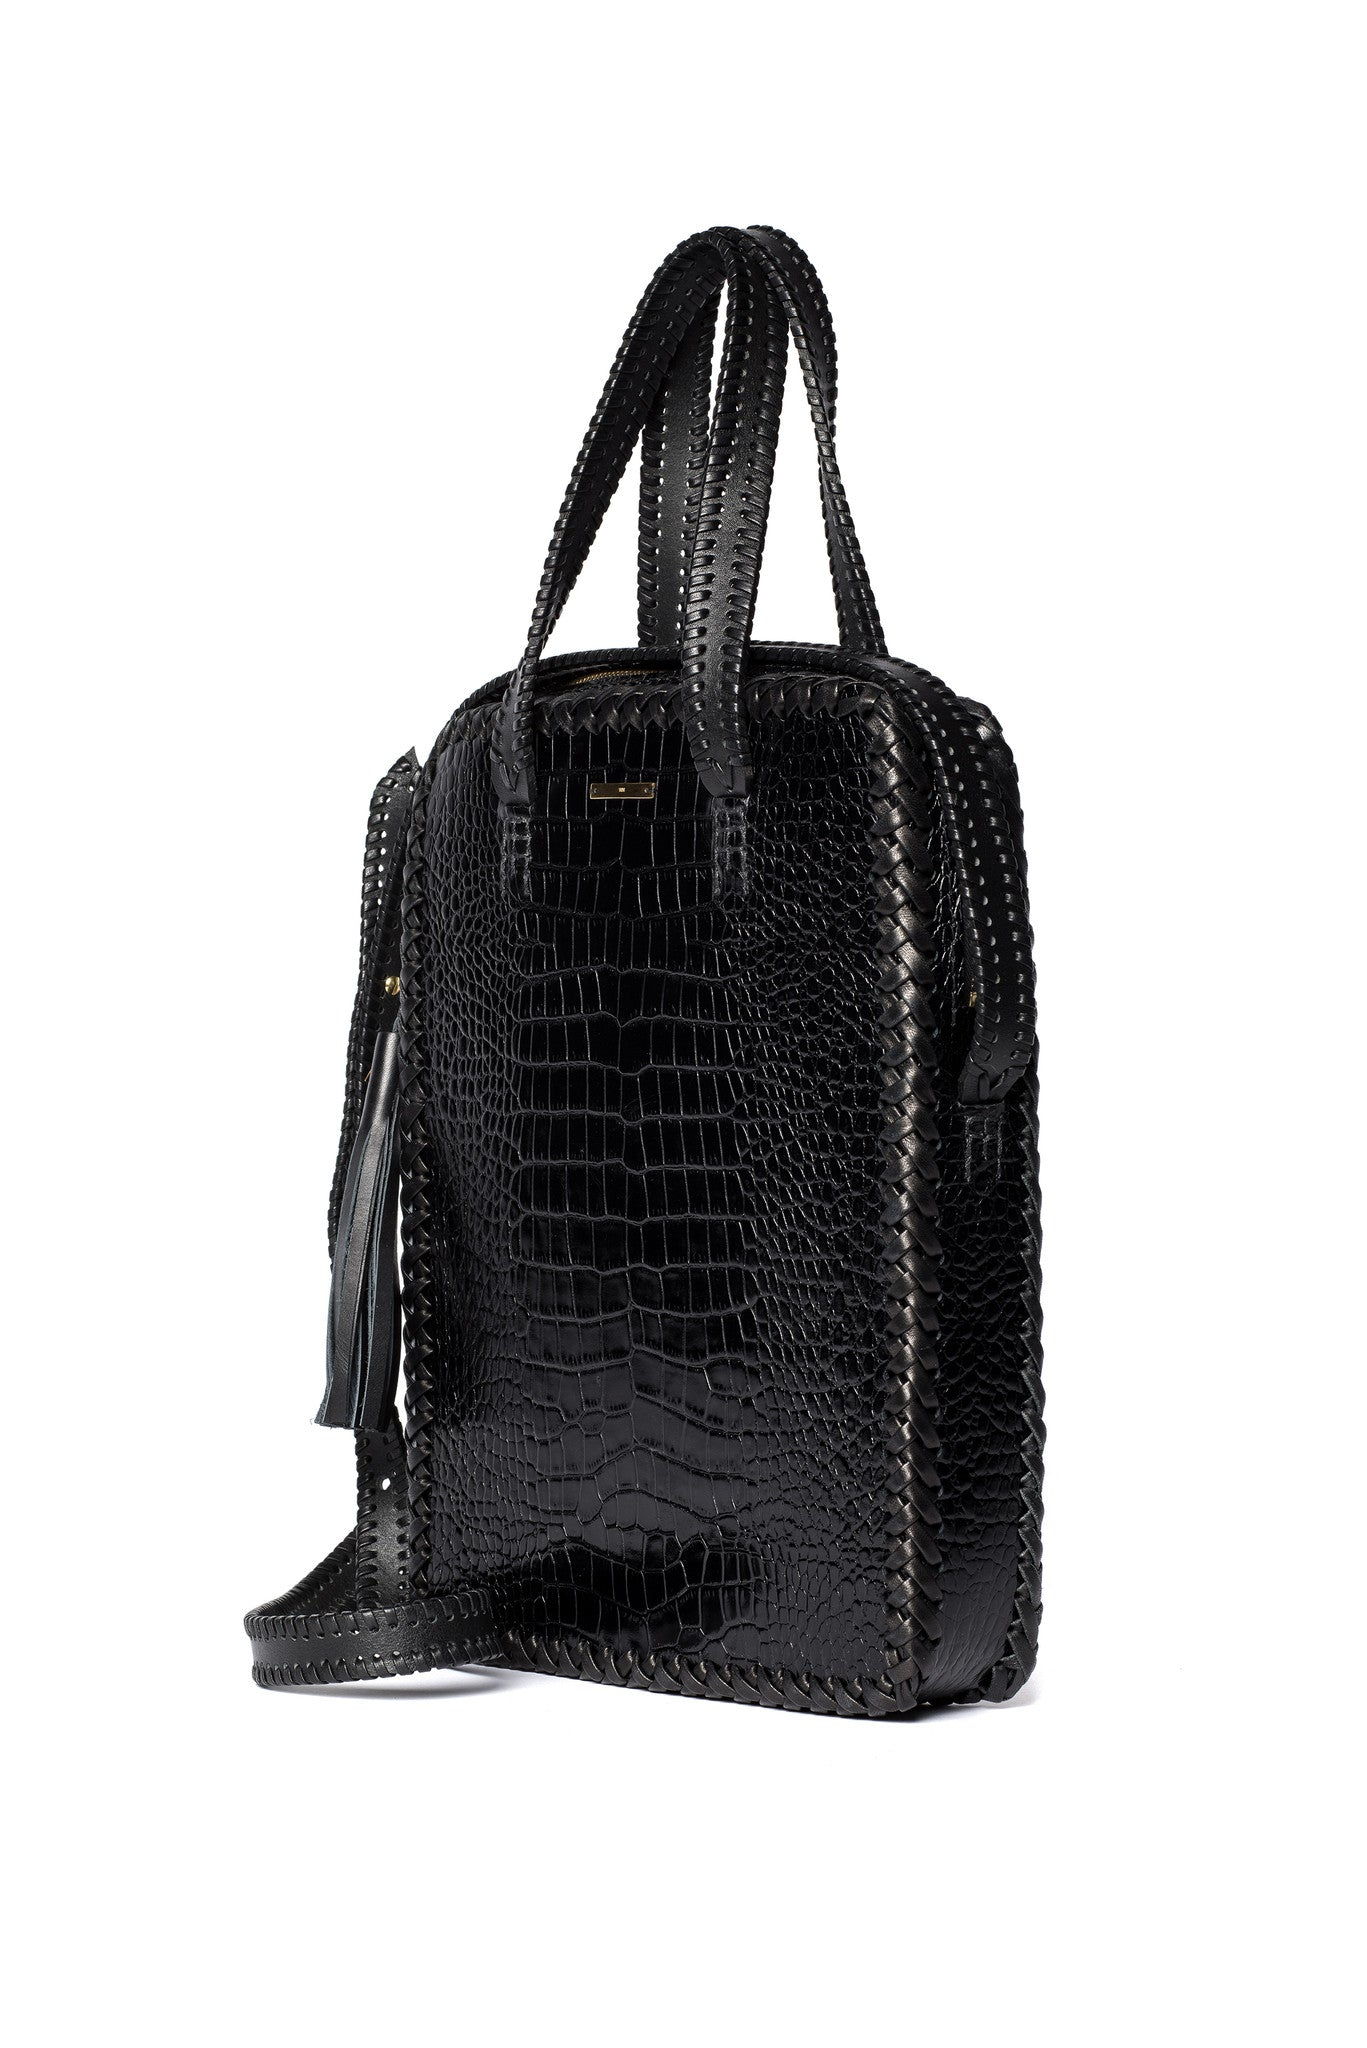 Black Shiny Reflective Embossed Croc Crocodile Alligator Cowhide Leather Vertical Folio Computer Work Briefcase Brief Bag Wendy Nichol Luxury Handbag Purse Designer Handmade in NYC New York City Whipstitch Cross Body Adjustable Strap Zip Zipper fringe Tassel pull durable handles interior pocket High Quality Leather